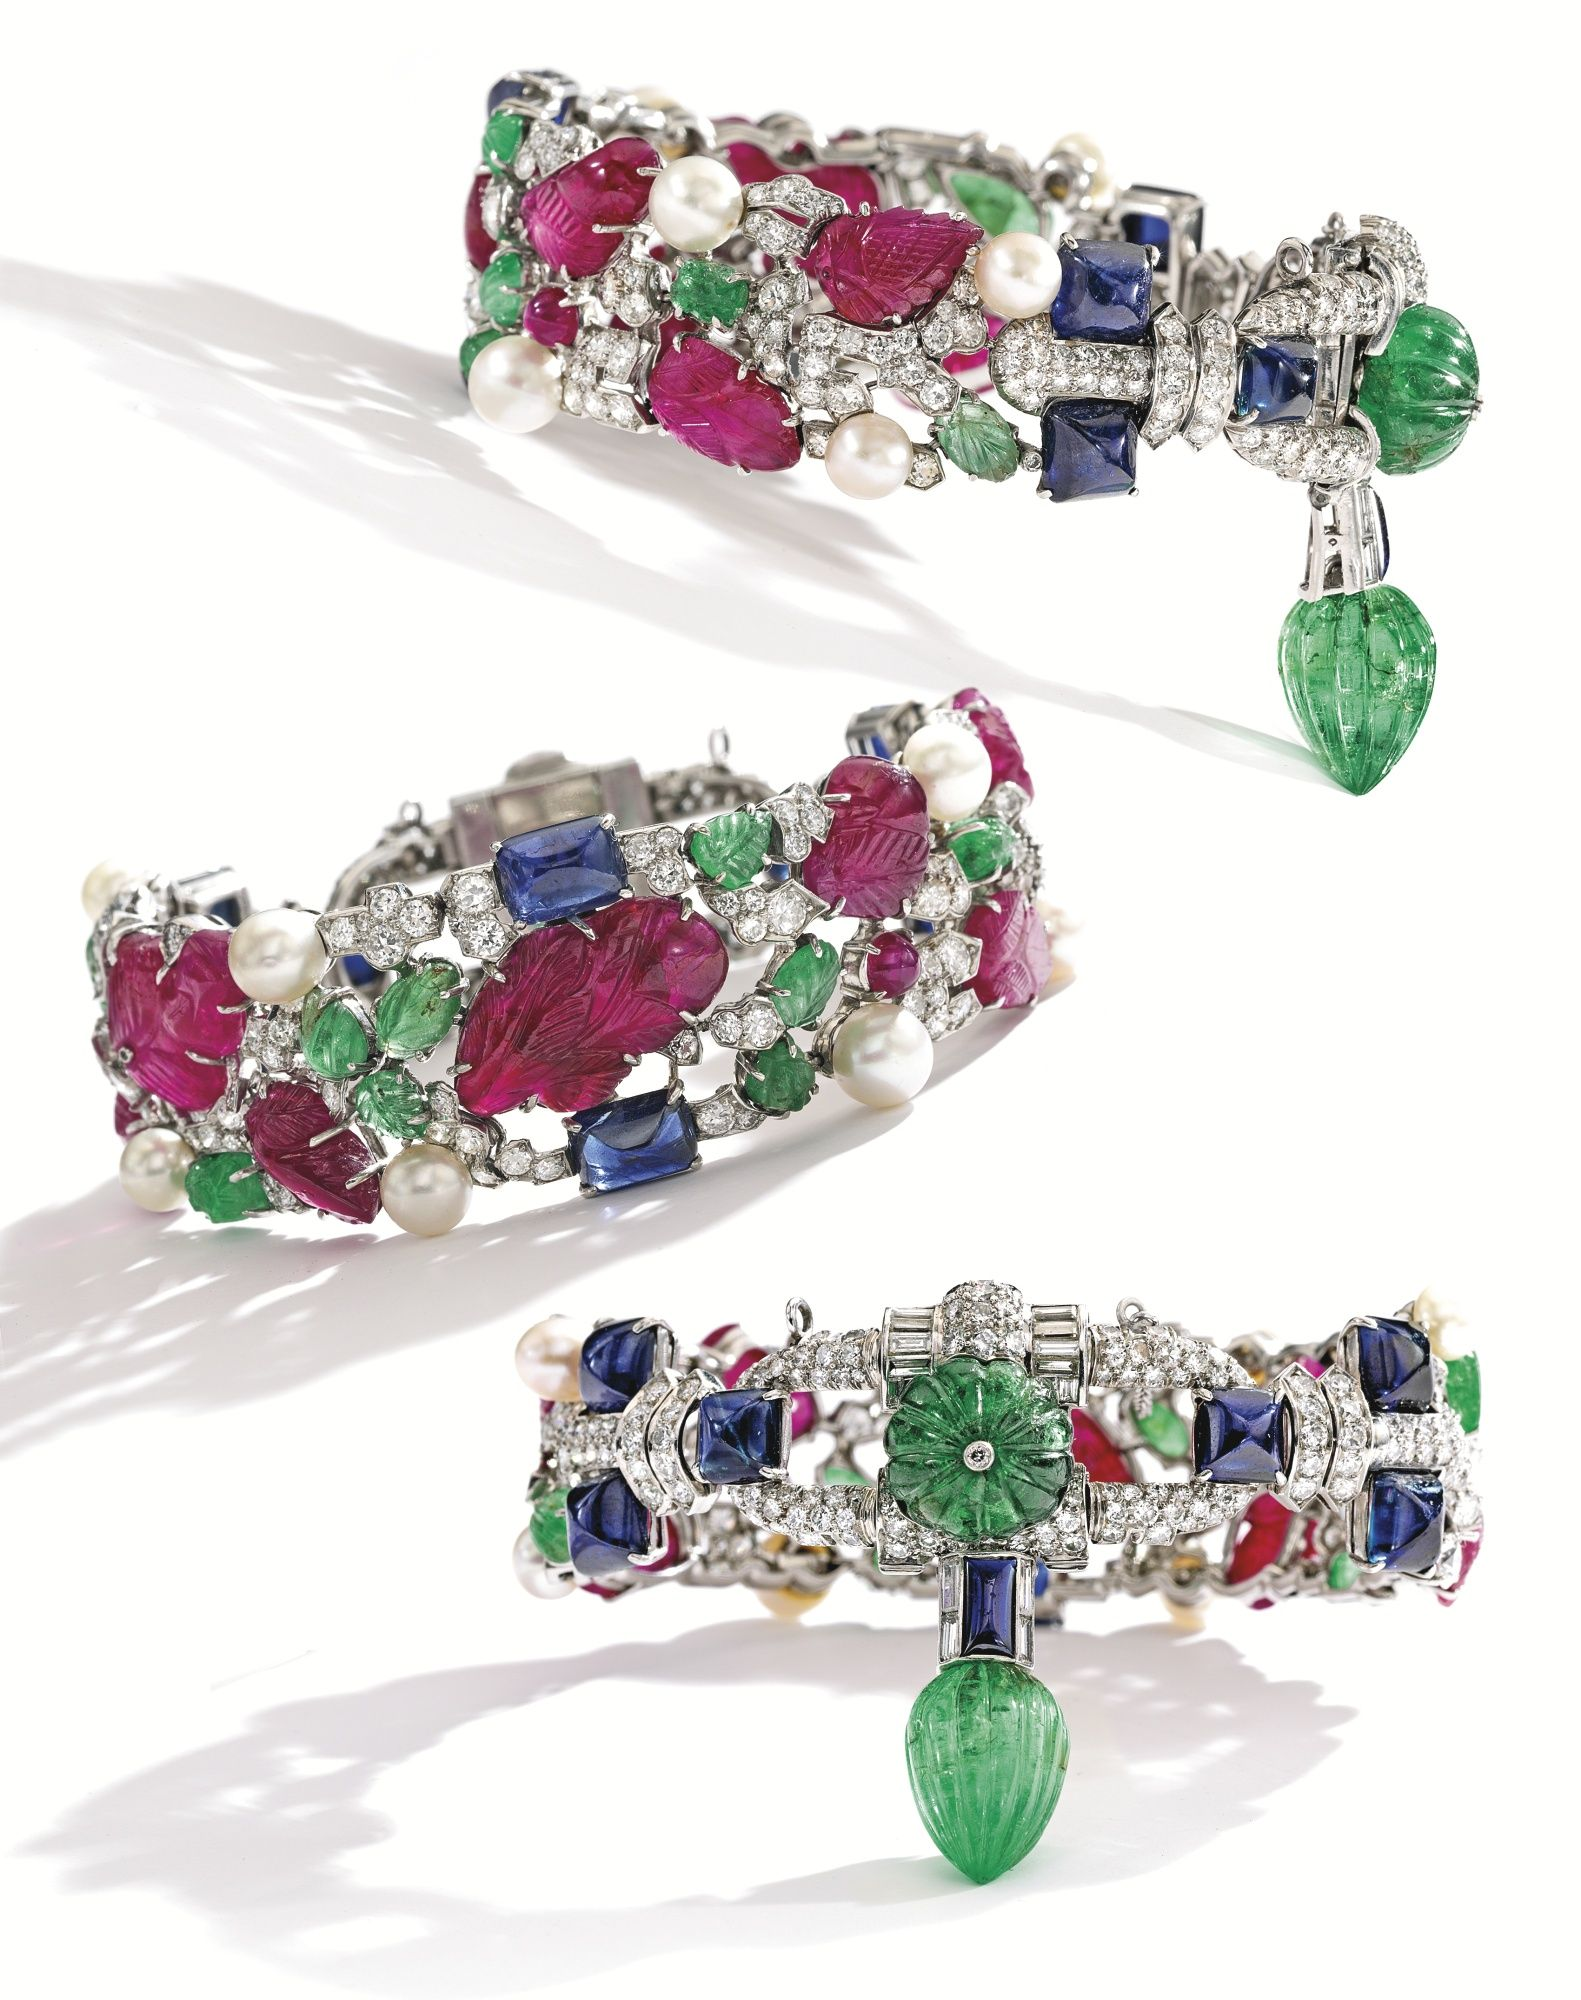 Platinum, Carved Colored Stone, Diamond and Pearl 'Tutti Frutti' Bracelet, Cartier   Lot   Sotheby's